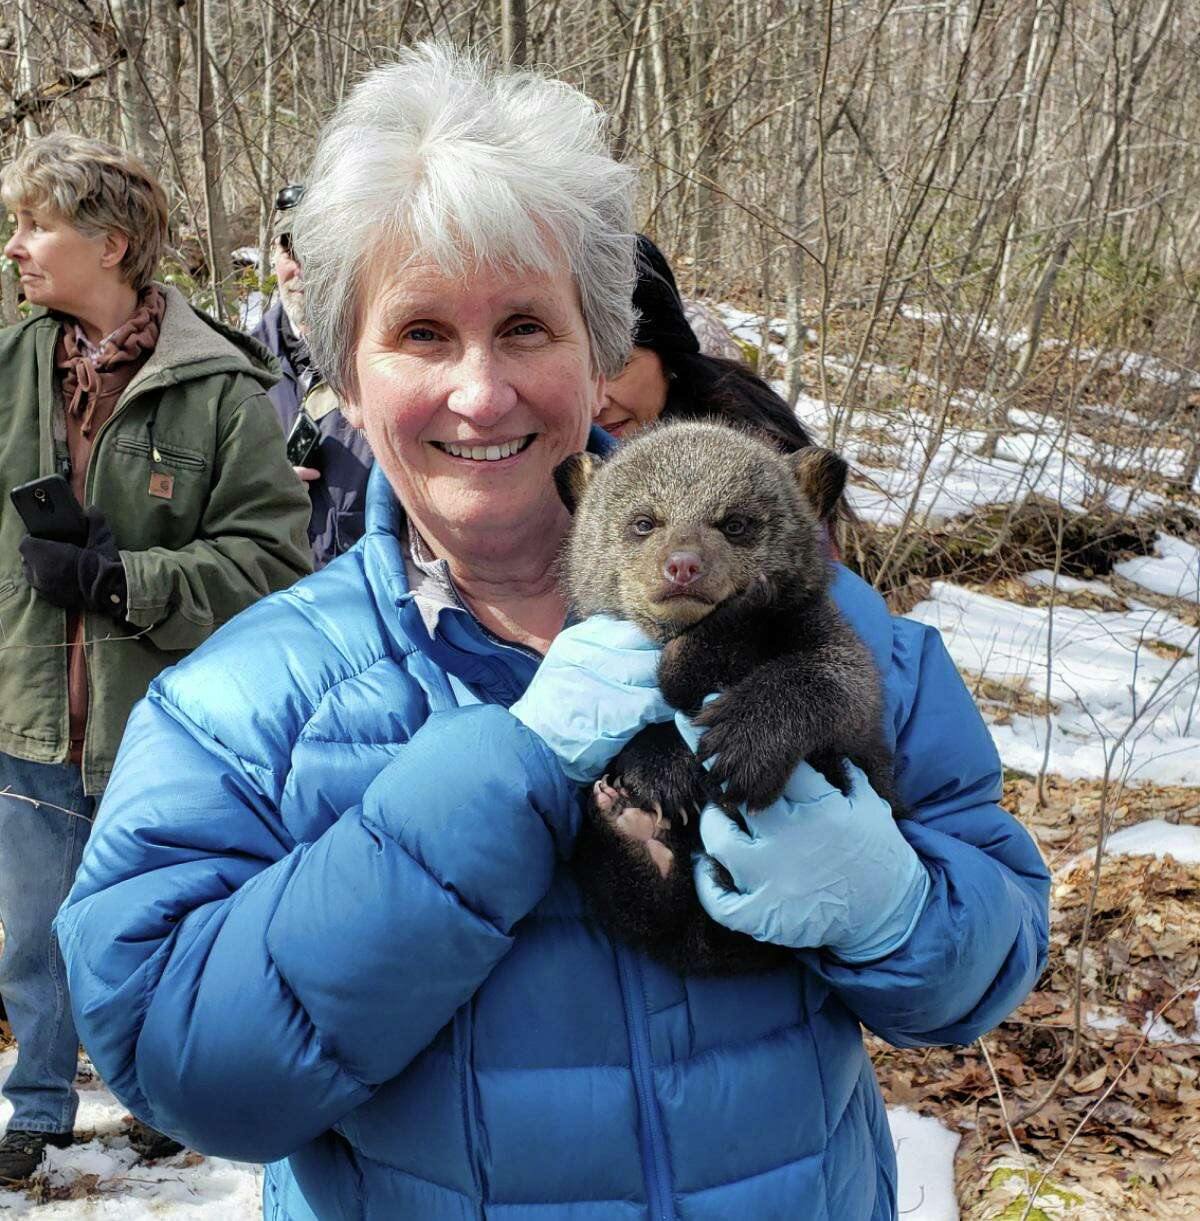 The David M. Hunt Library in Falls Village will host a Zoom event about Connecticut's wild turkey population with Master Conservationist Ginny Apple, at 3 p.m. Nov. 14. Attendees can register at HuntLibrary.org, on the Library's Facebook page, or by calling the library at 860-824-7424.